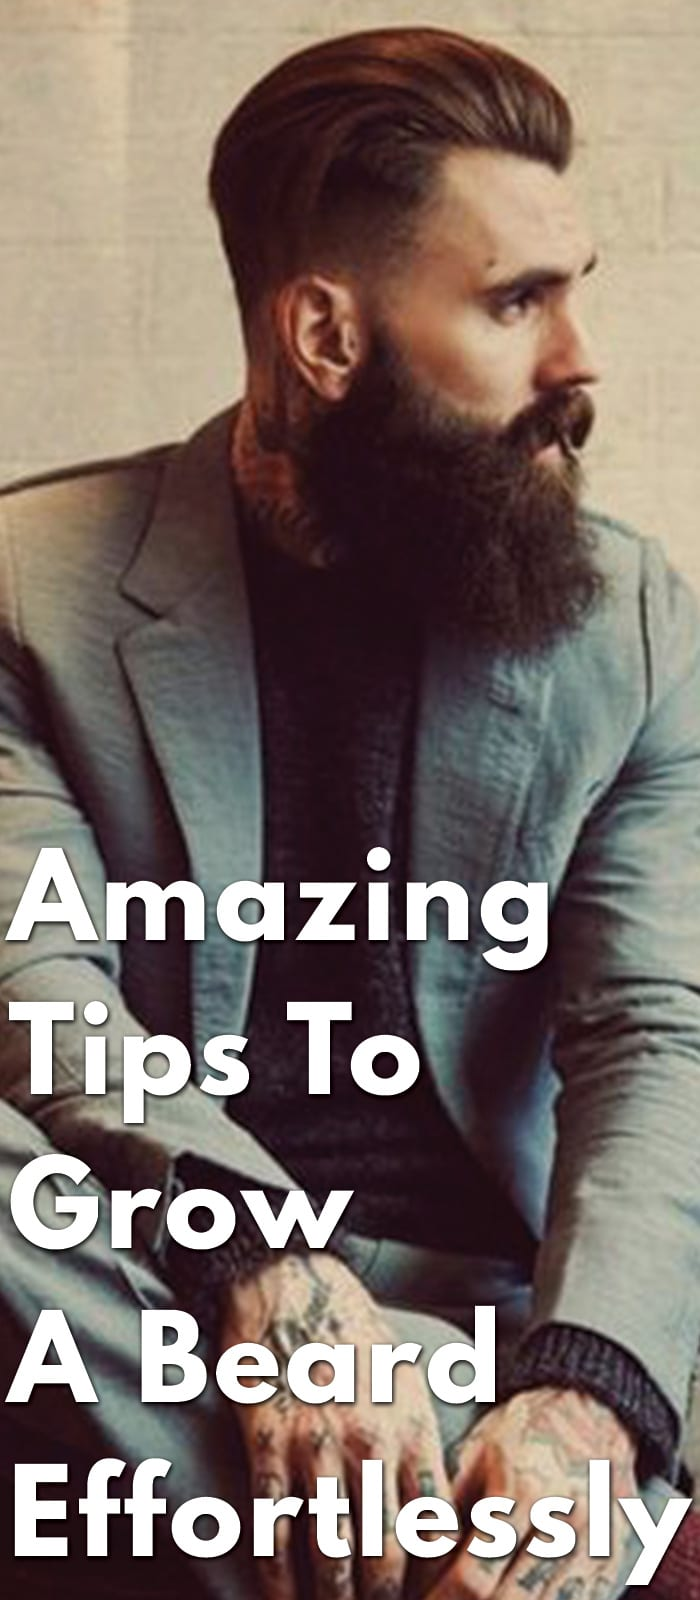 Amazing-Tips-To-Grow-A-Beard-Effortlessly